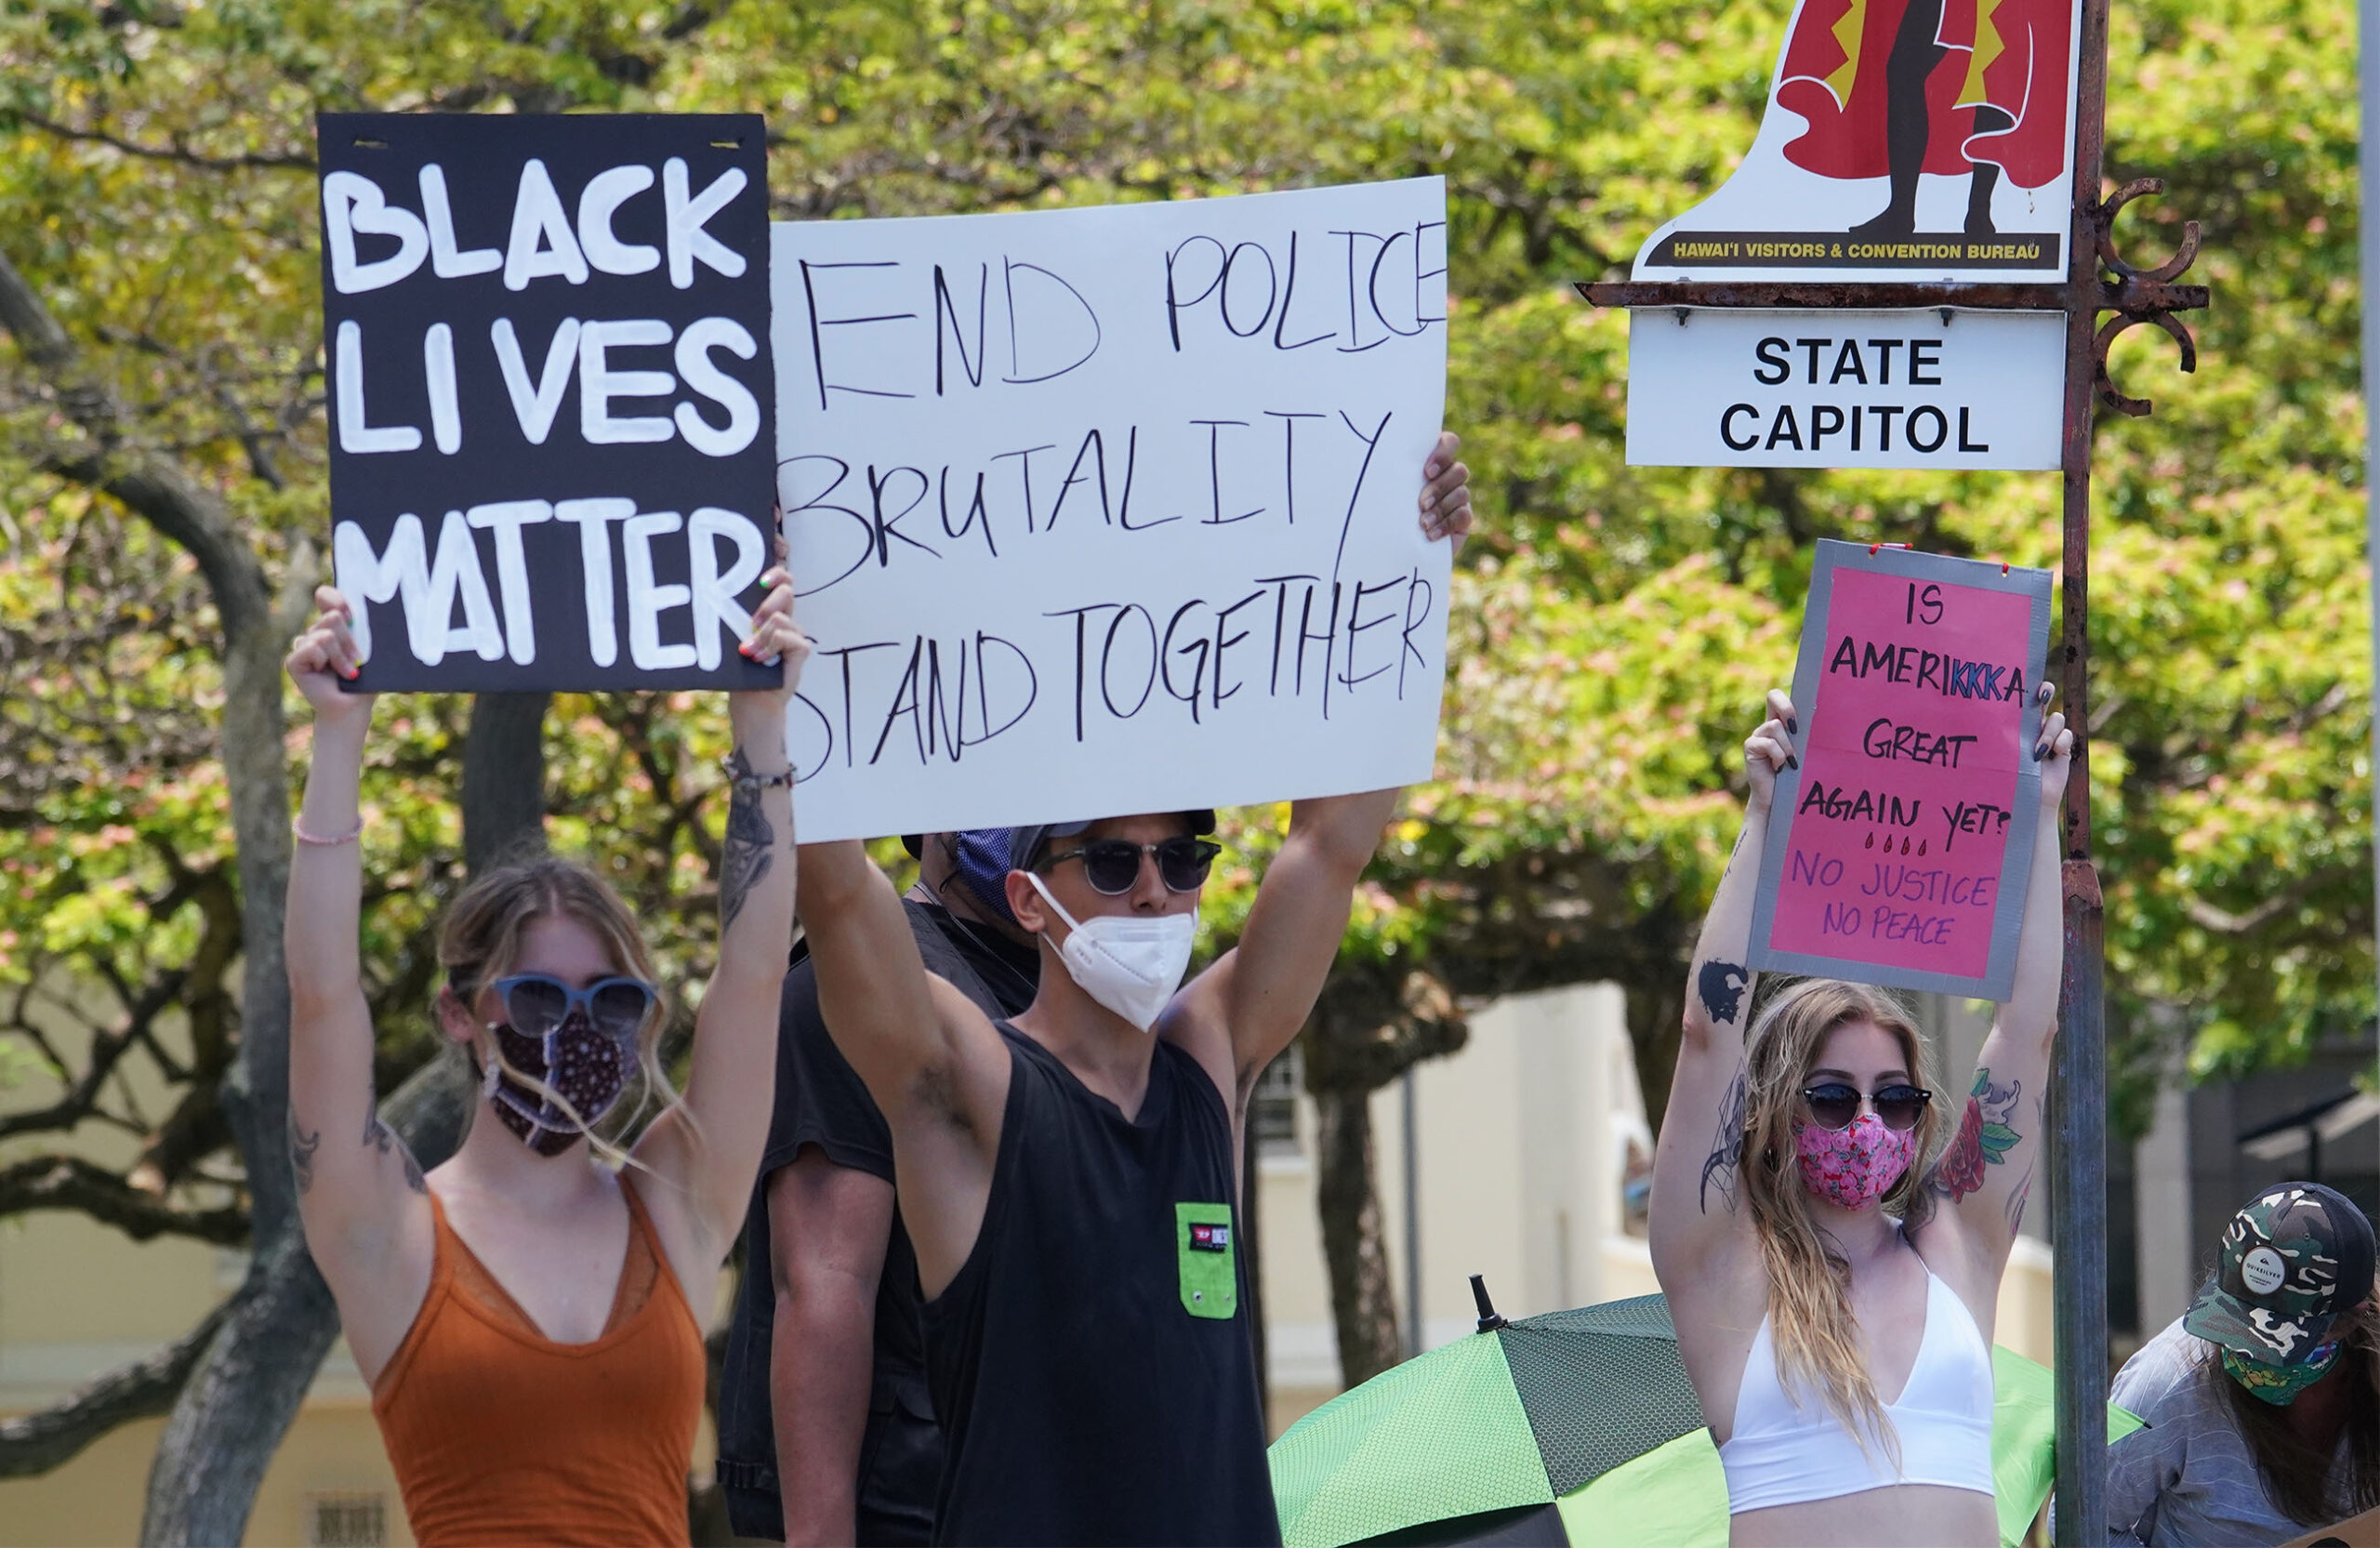 <p>Black Lives Matter supporters held signs along Beretania Street fronting the Capitol in solidarity with global outrage over the death of George Floyd, who died in May after a Minneapolis police officer kneeled on his neck for almost 9 minutes. Honolulu police temporarily suspended vascular neck restraints in response.</p>